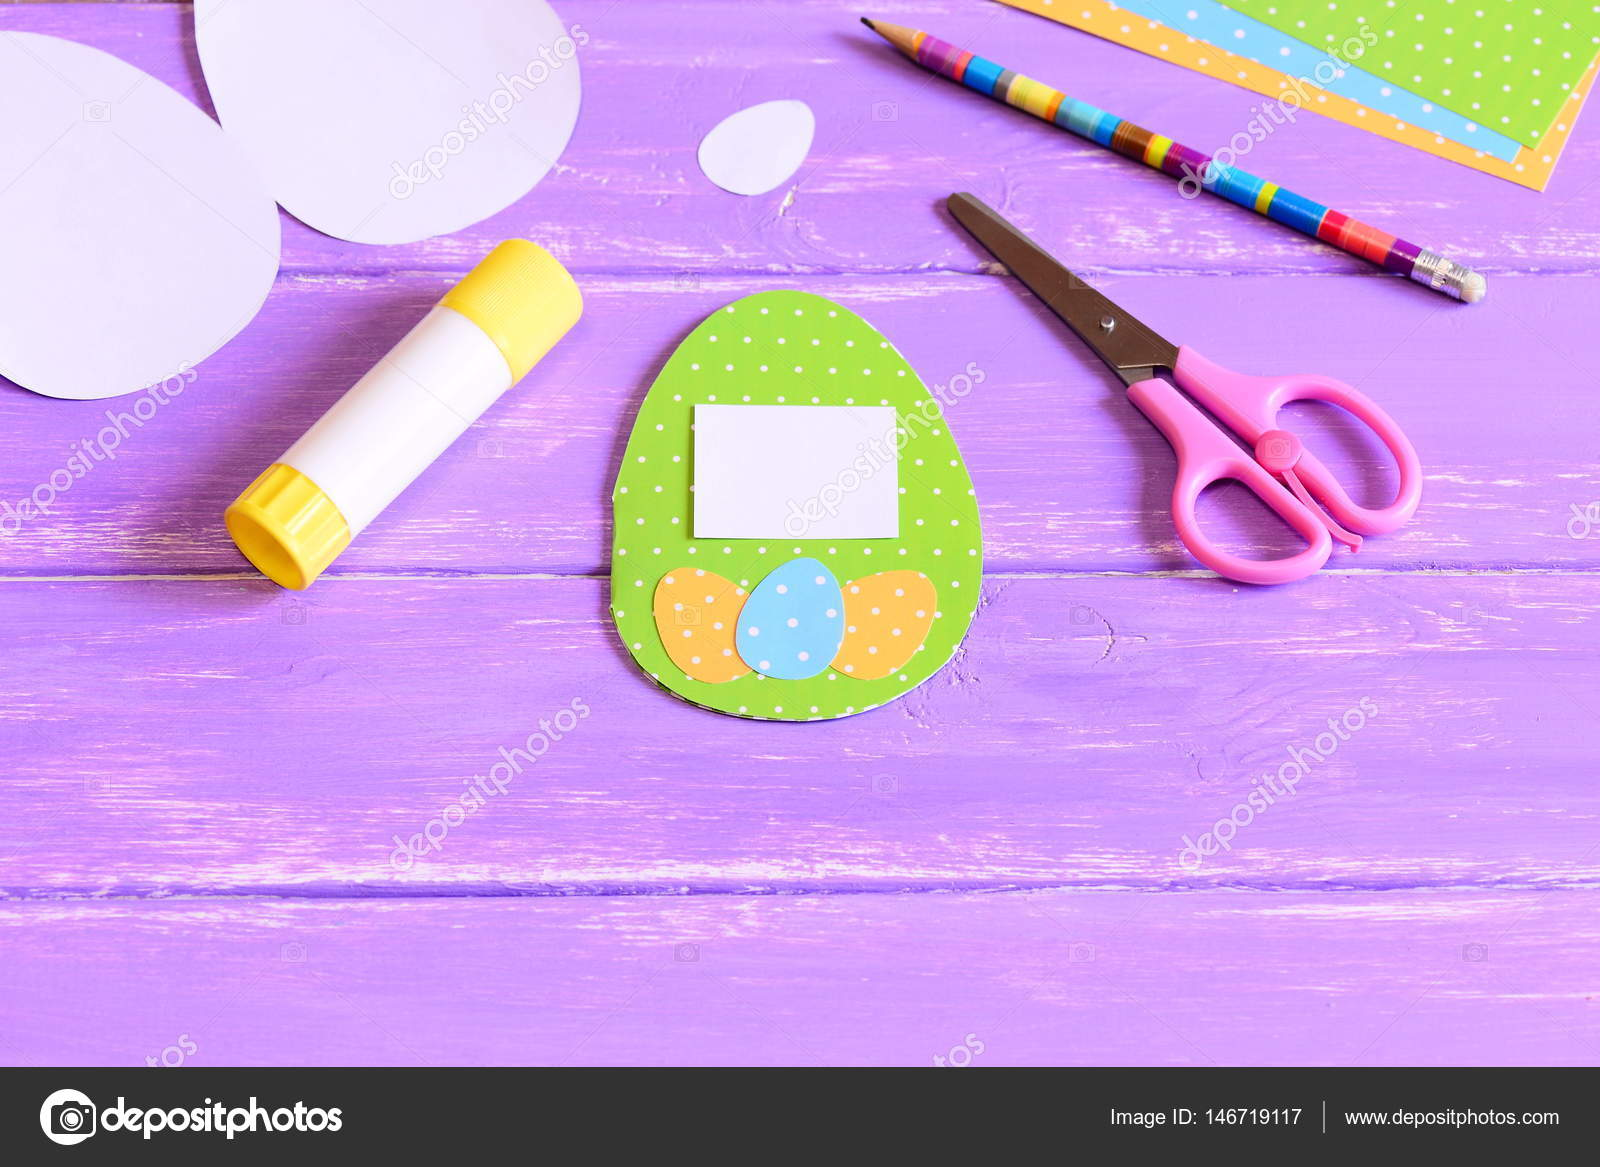 Easter greeting card with egg made of colored cardboard, colored ...